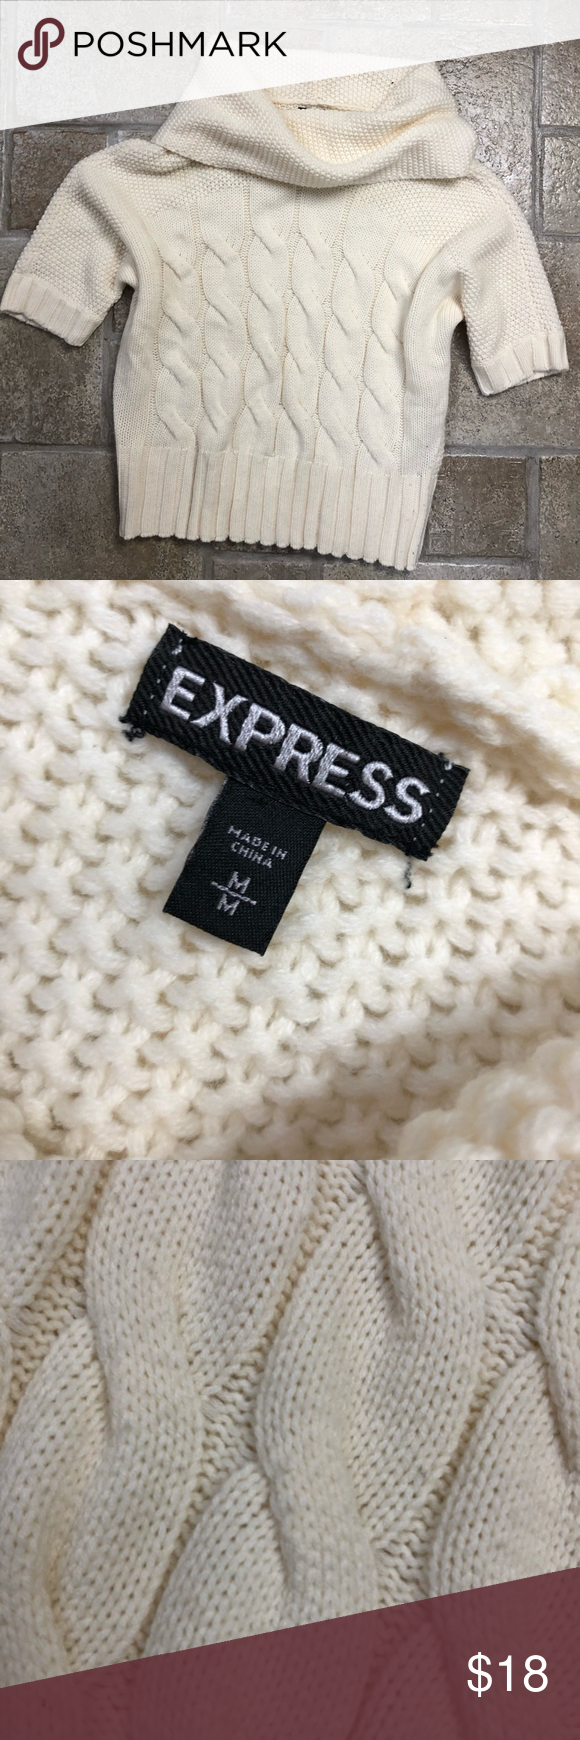 Final Express Dolman Sleeve Cable Knit Sweater Cable Knit Sweaters Dolman Sleeve Dolman Sleeve Shirt